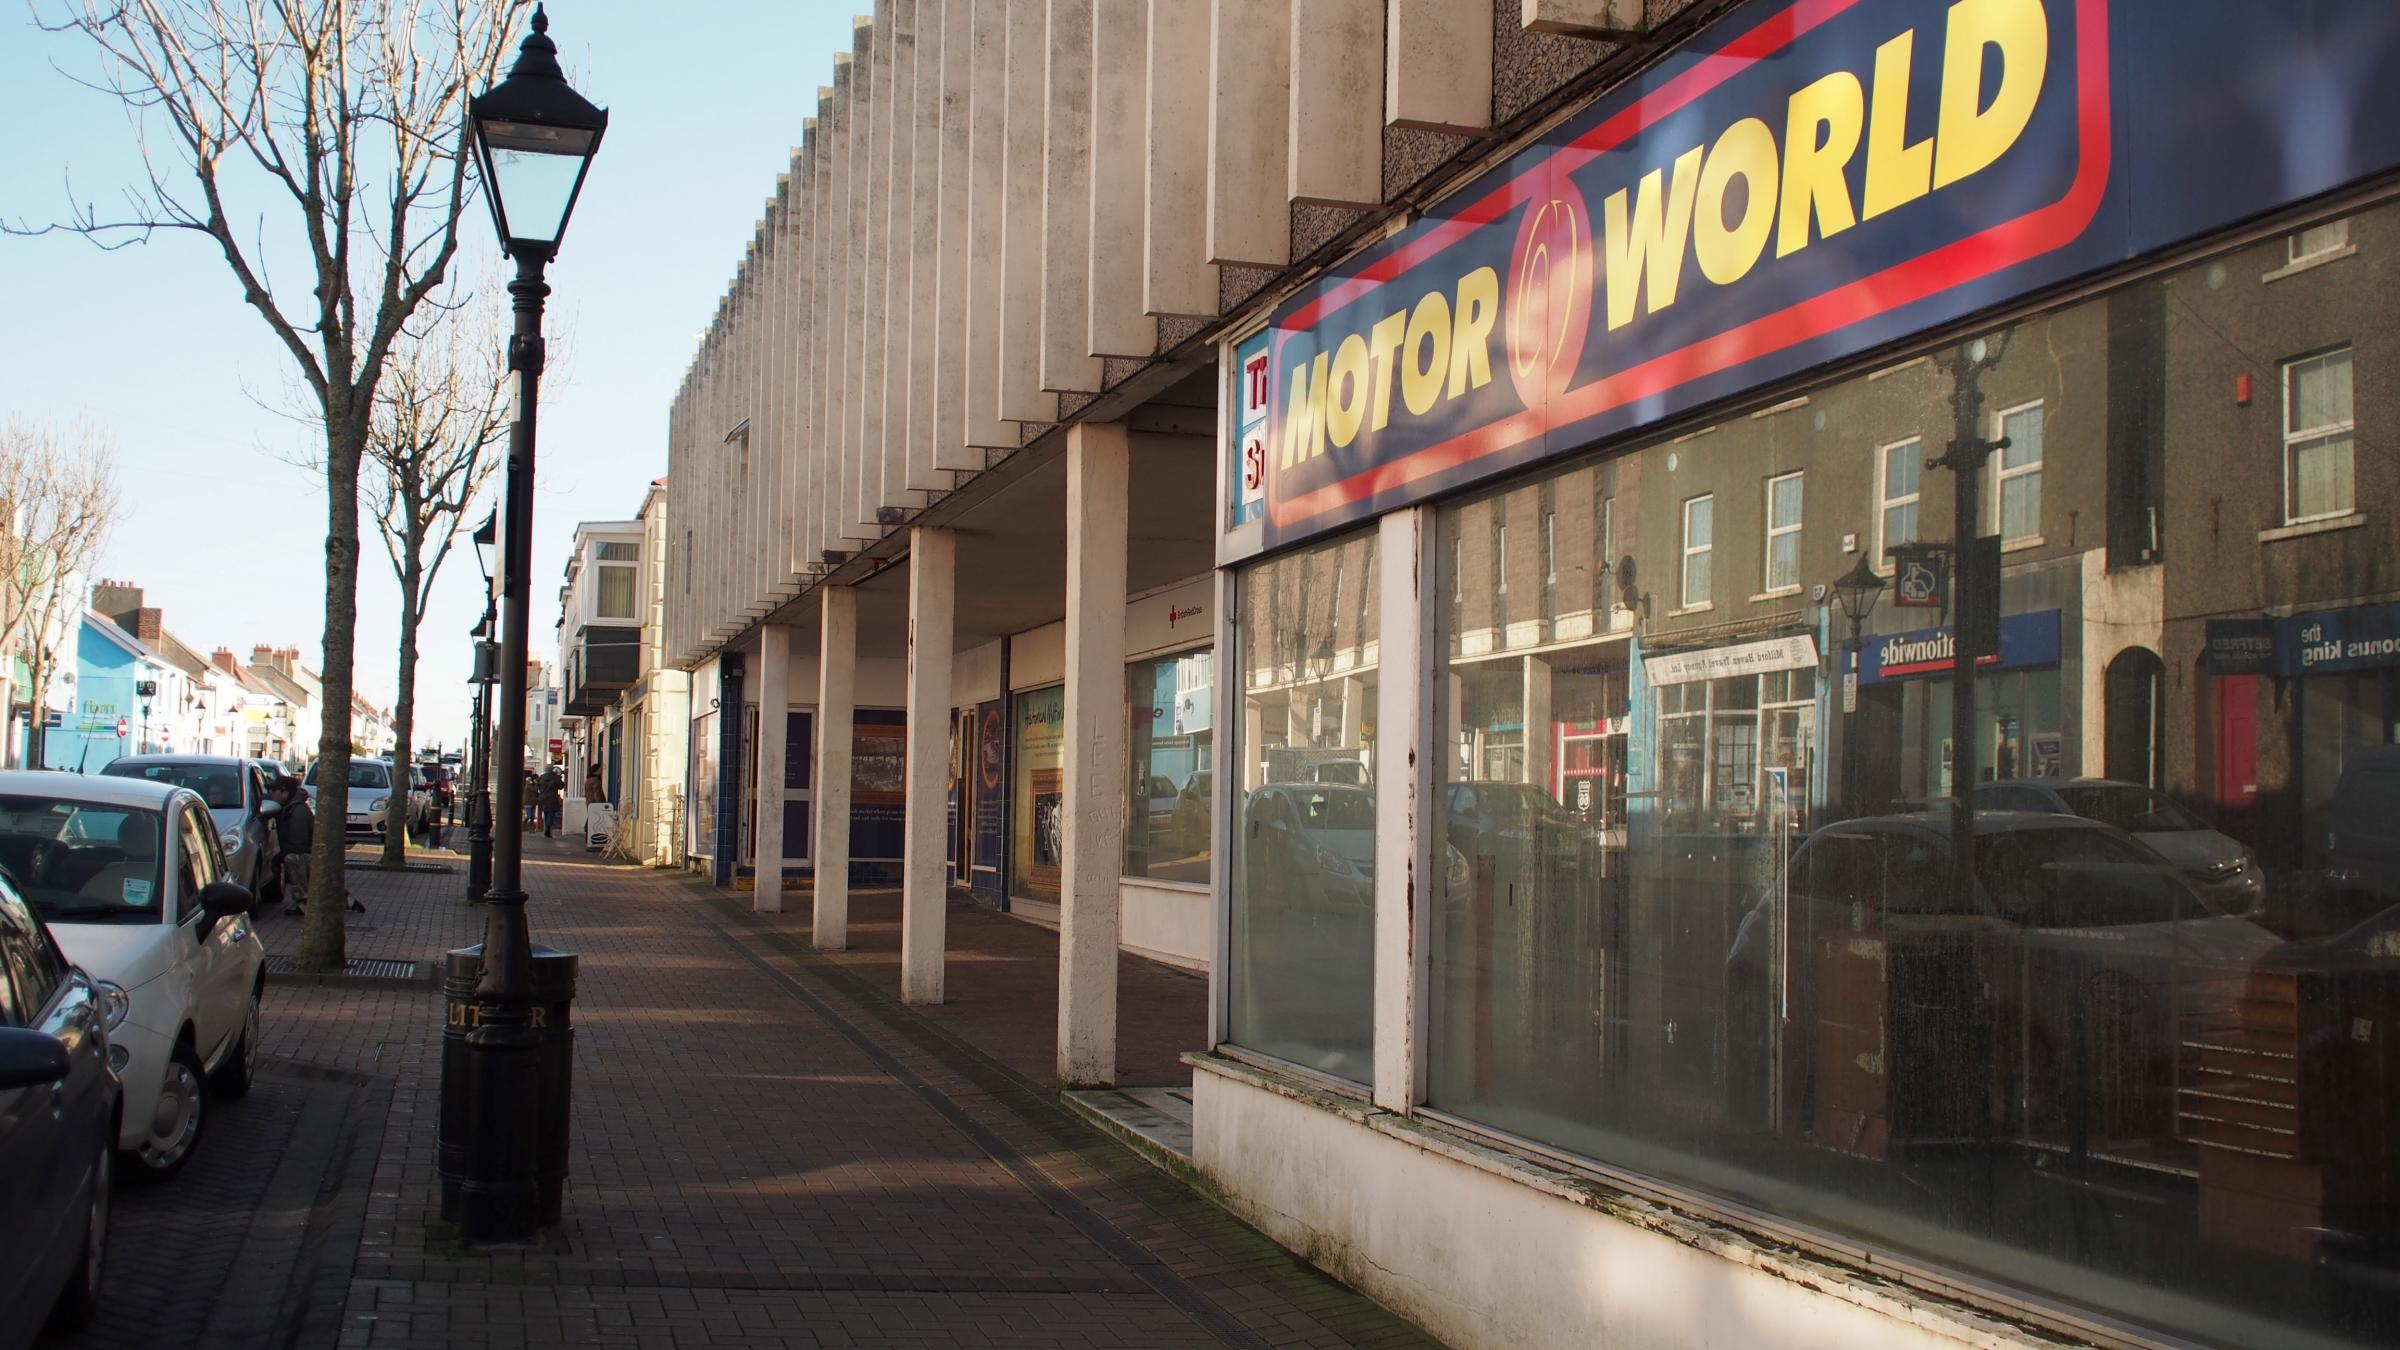 The former Motorworld building, Charles Street, Milford Haven. PICTURE: Milford Mercury